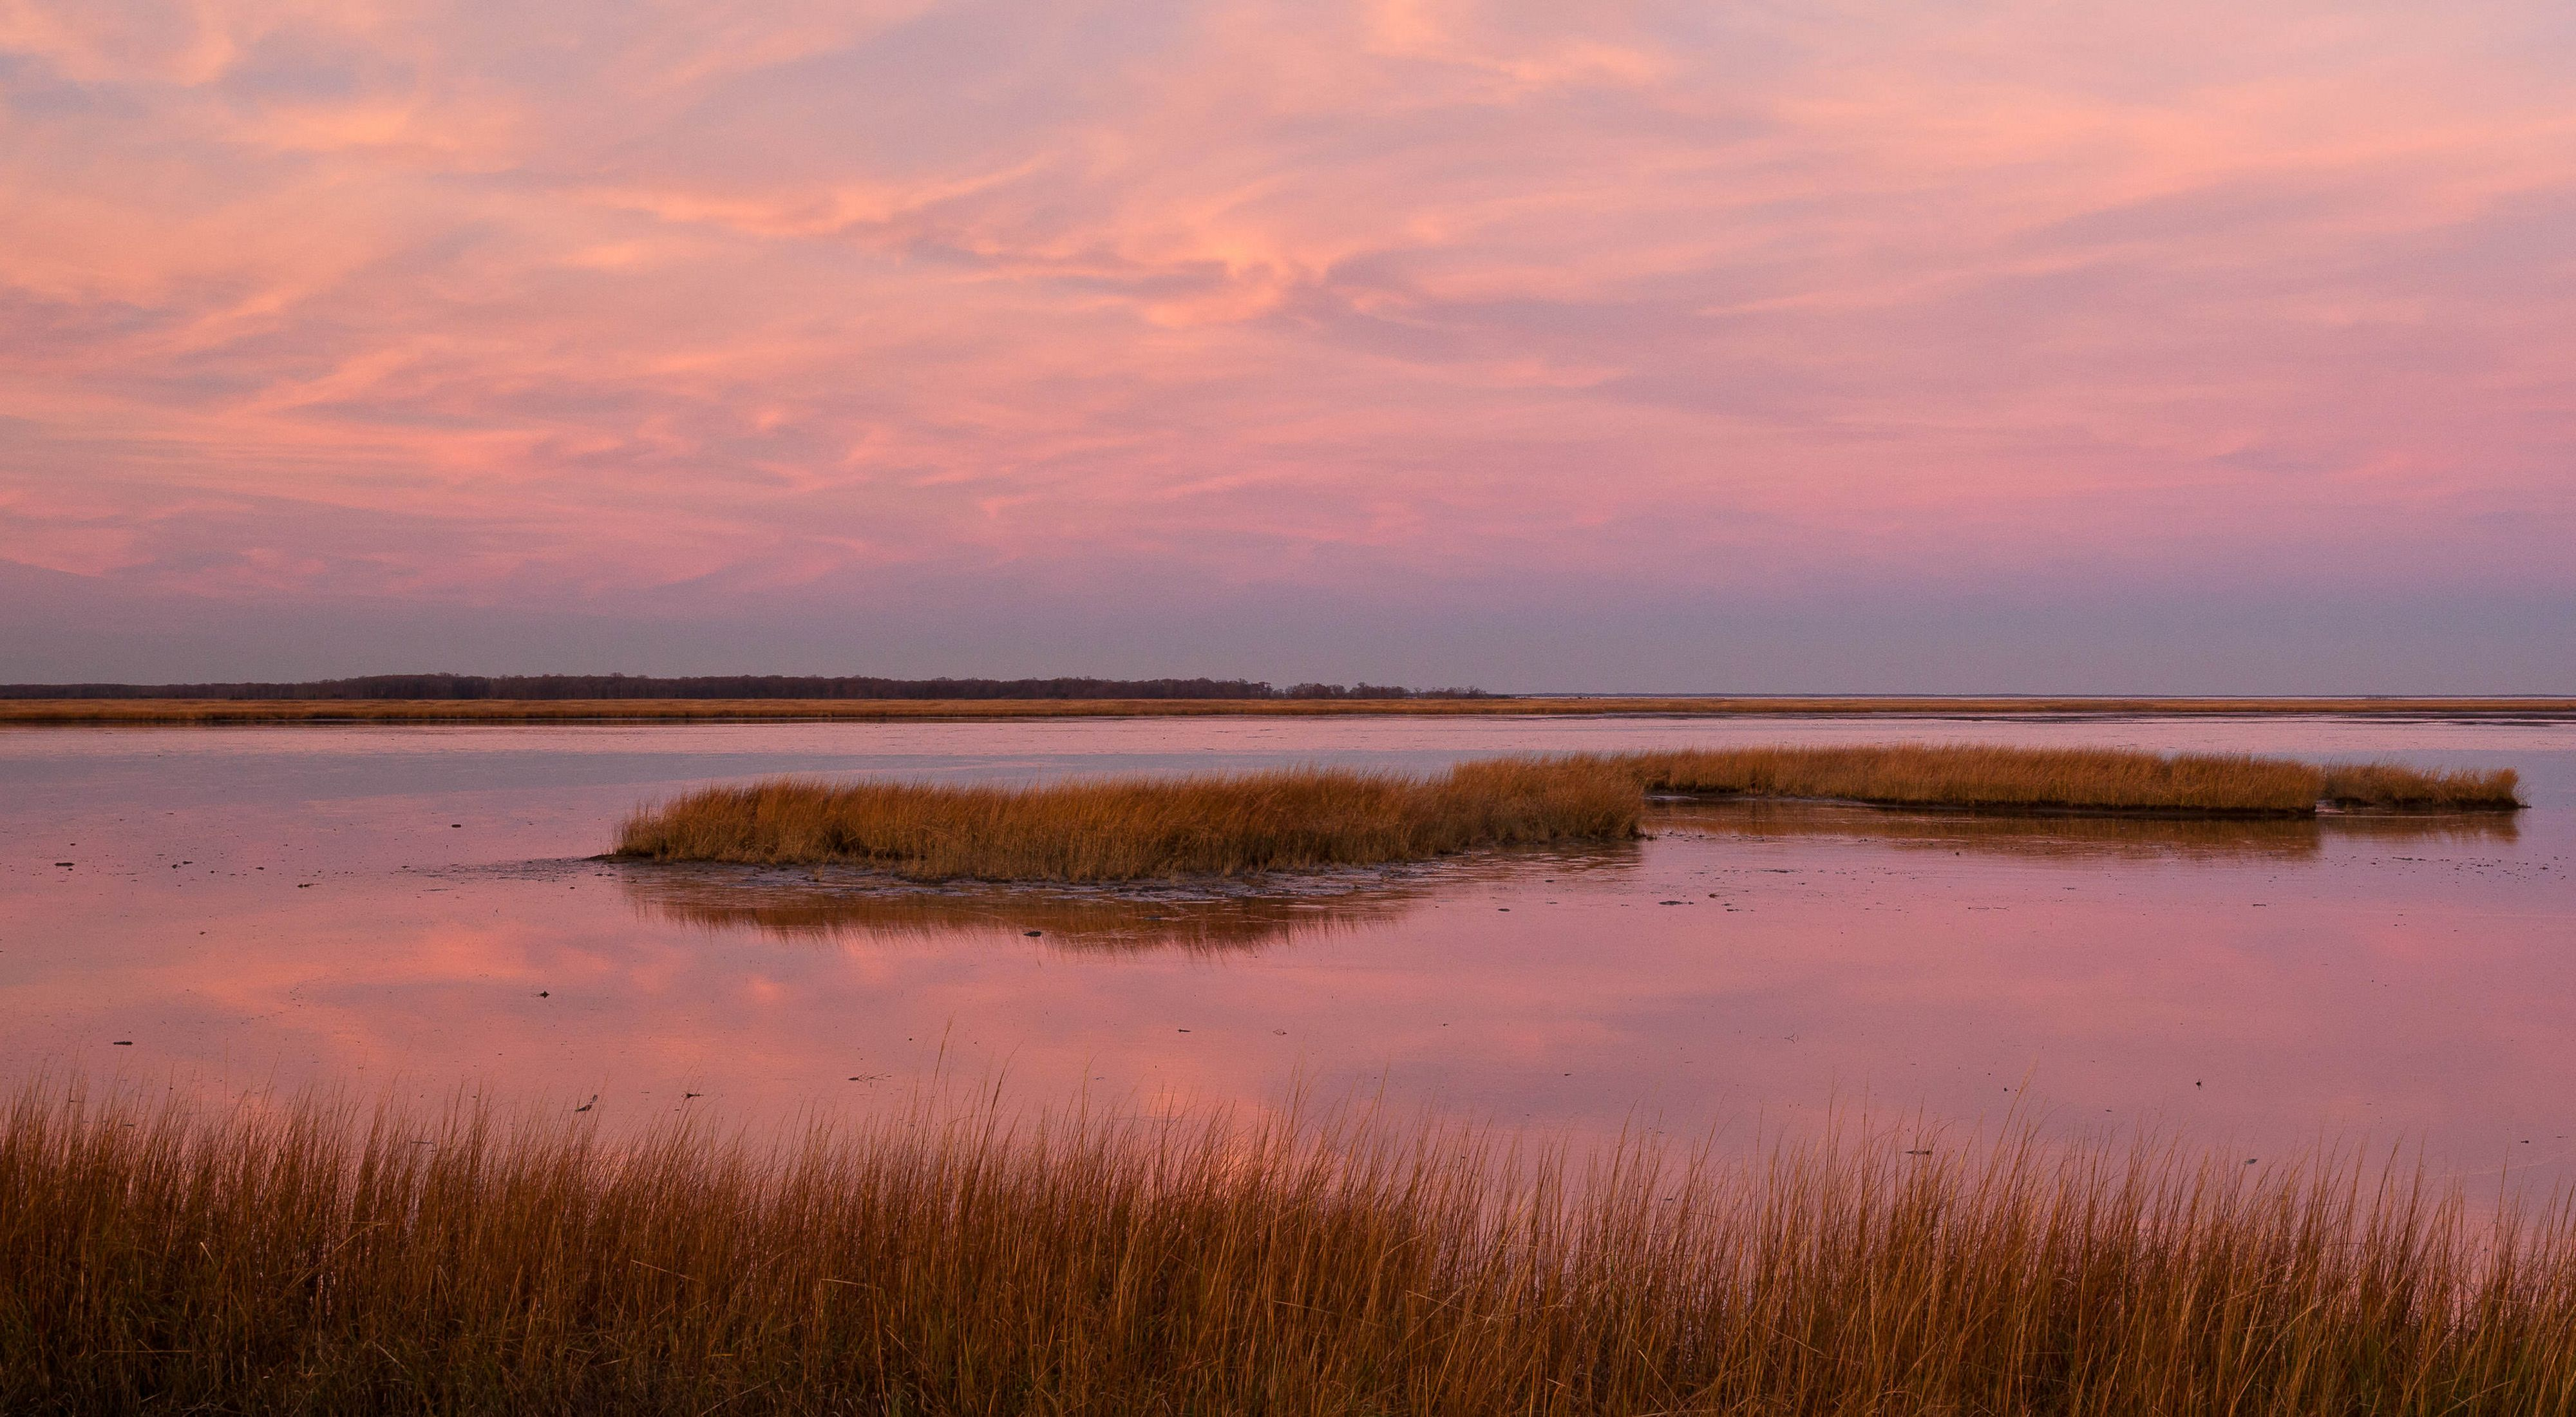 The rising sun bathes a coastal wetland in Maryland in soft pink light. Small islands of marsh grass dot the open water.